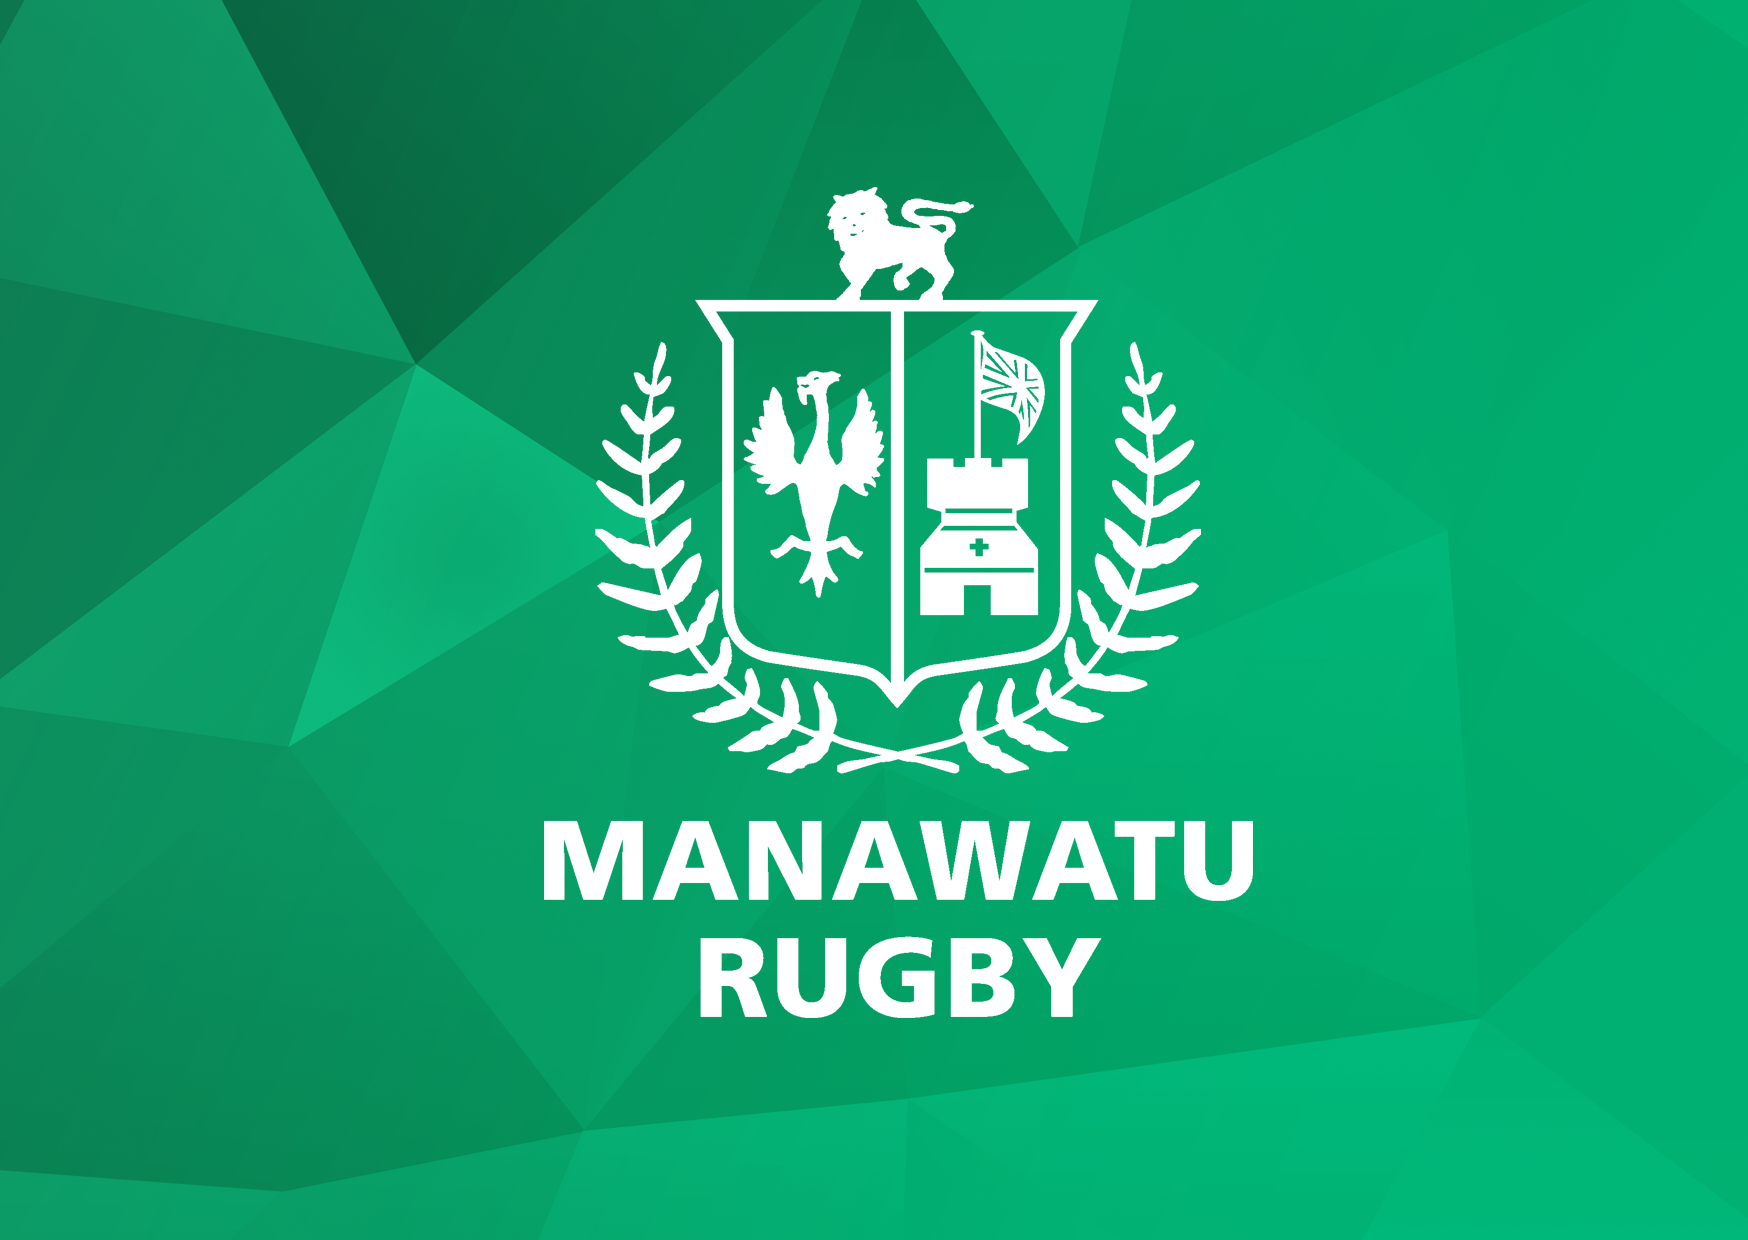 CALLING NOMINATIONS FOR APPOINTED MEMBERS TO THE MANAWATŪ CLUB RUGBY EXECUTIVE